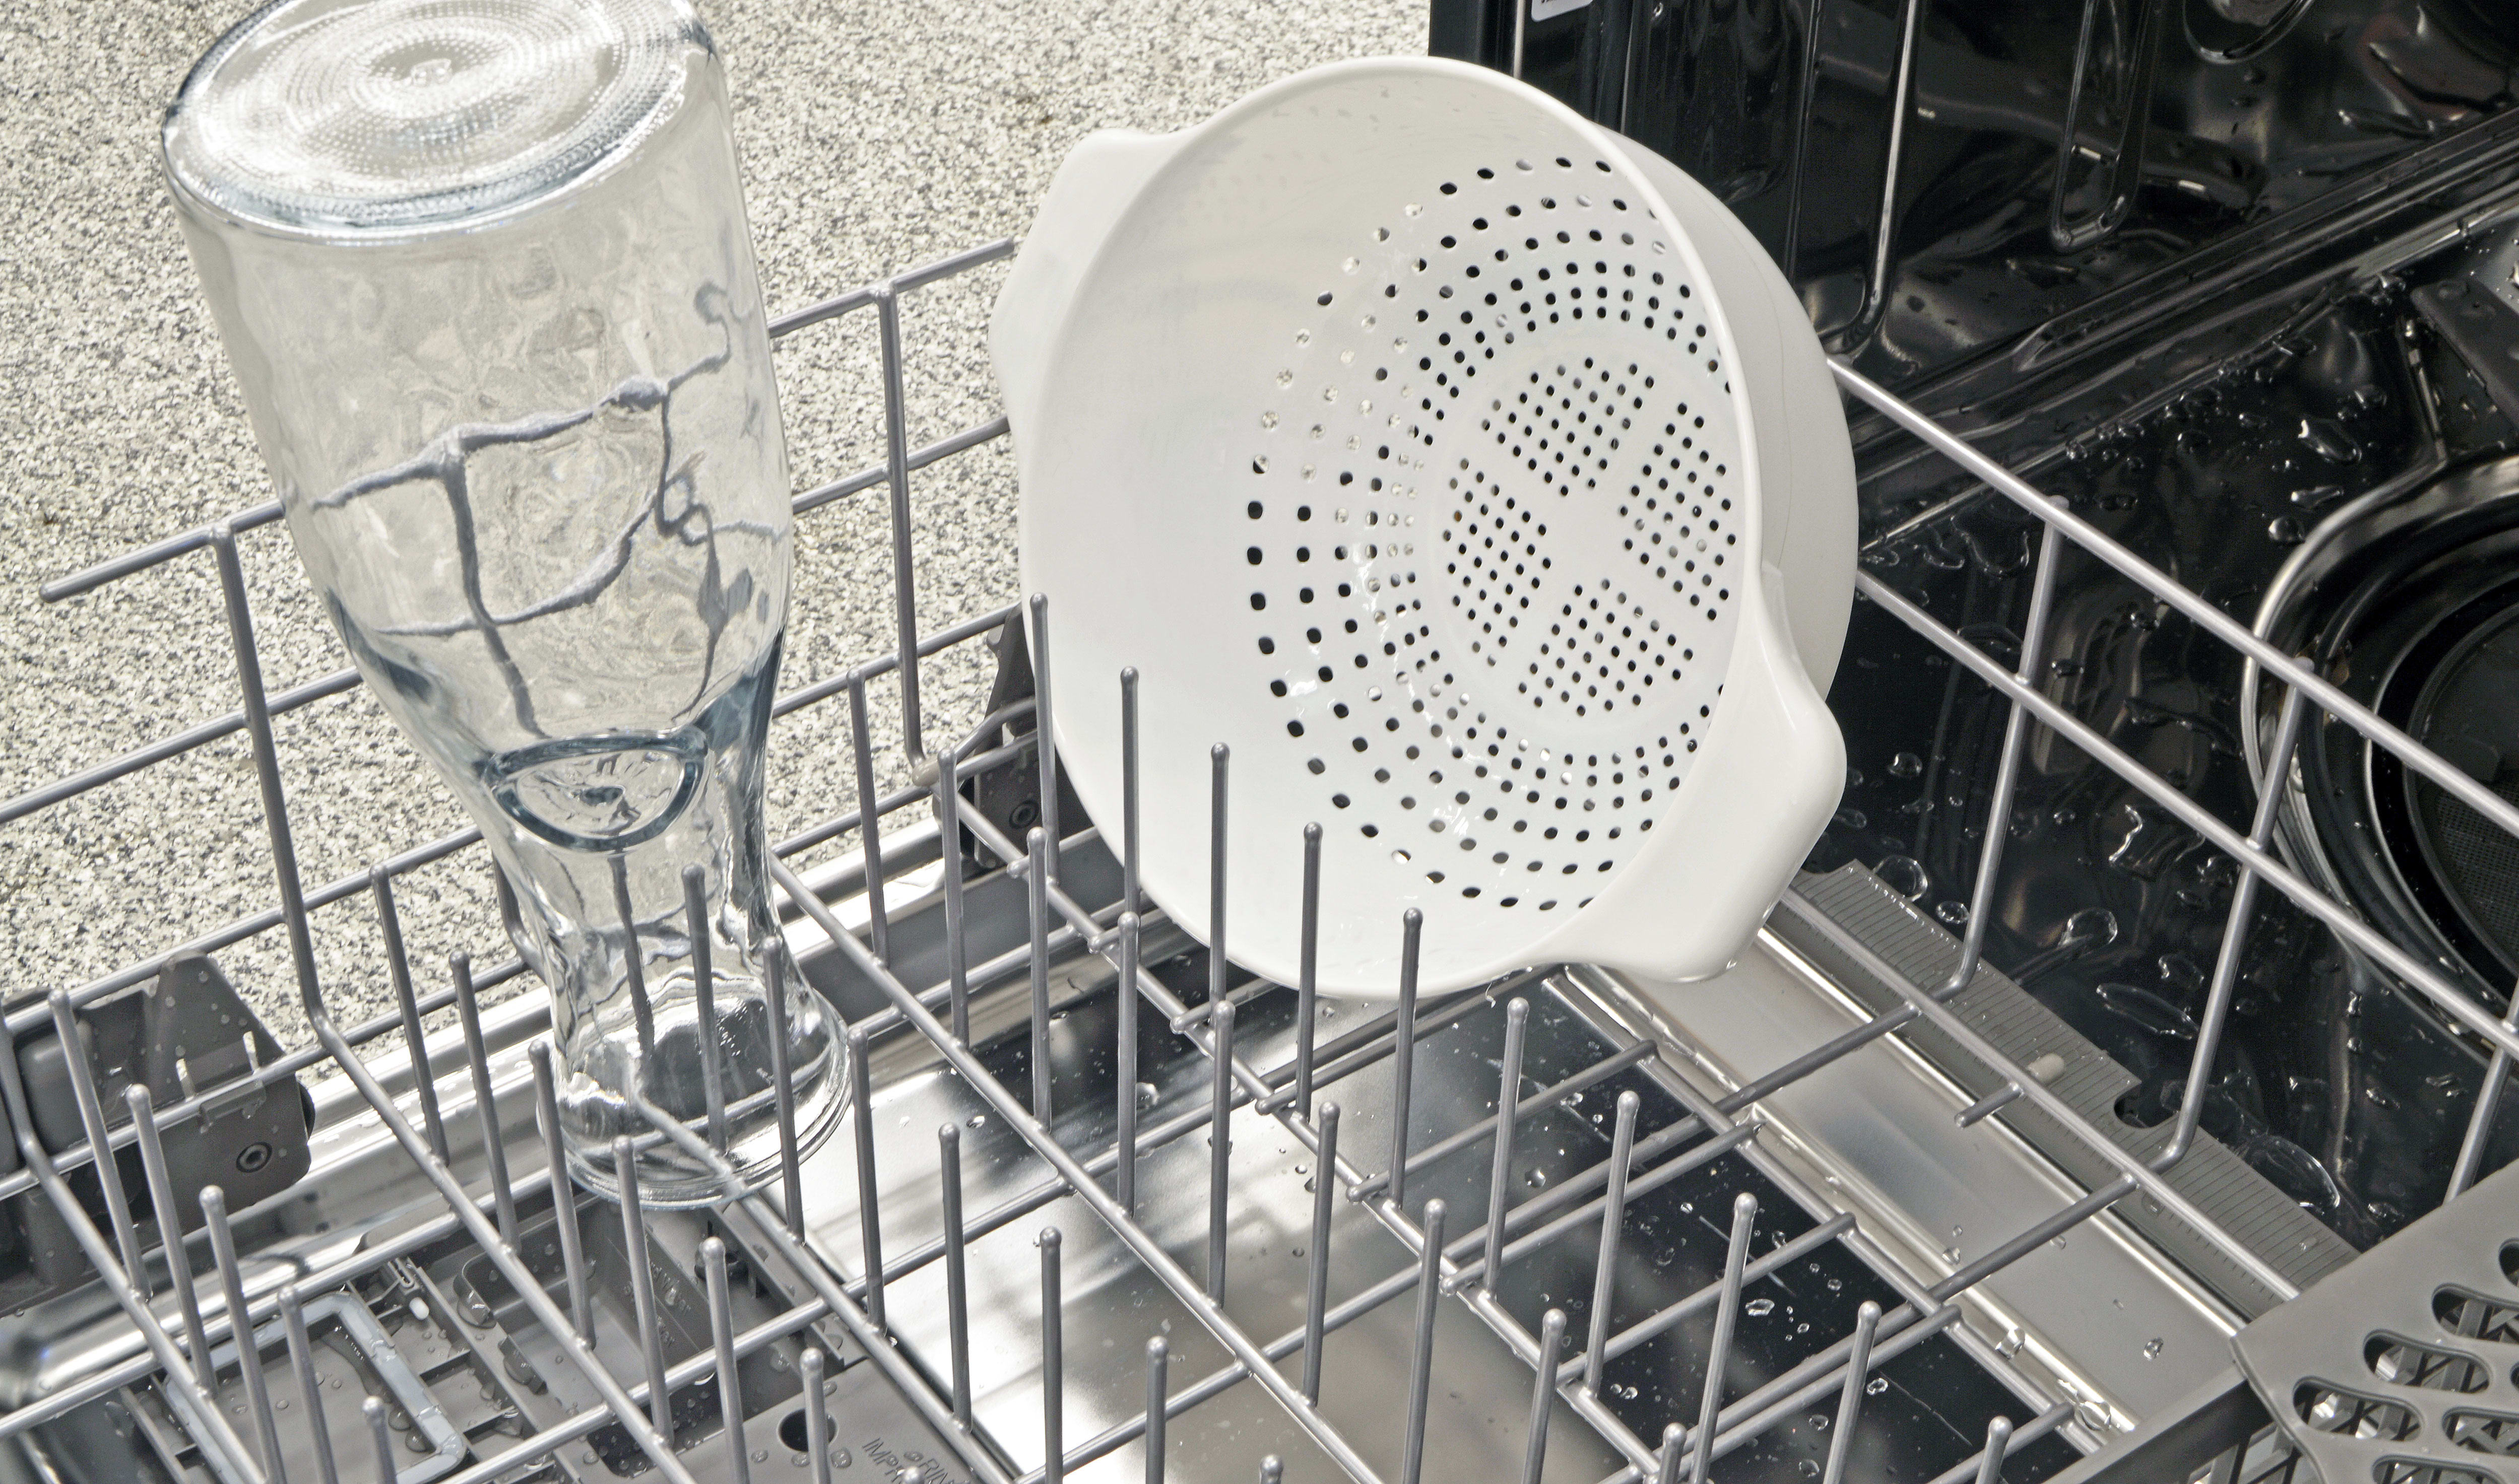 With the IKEA Renlig IUD8555DX's tines down, though, you do get one wide row suitable for larger pots and pans.